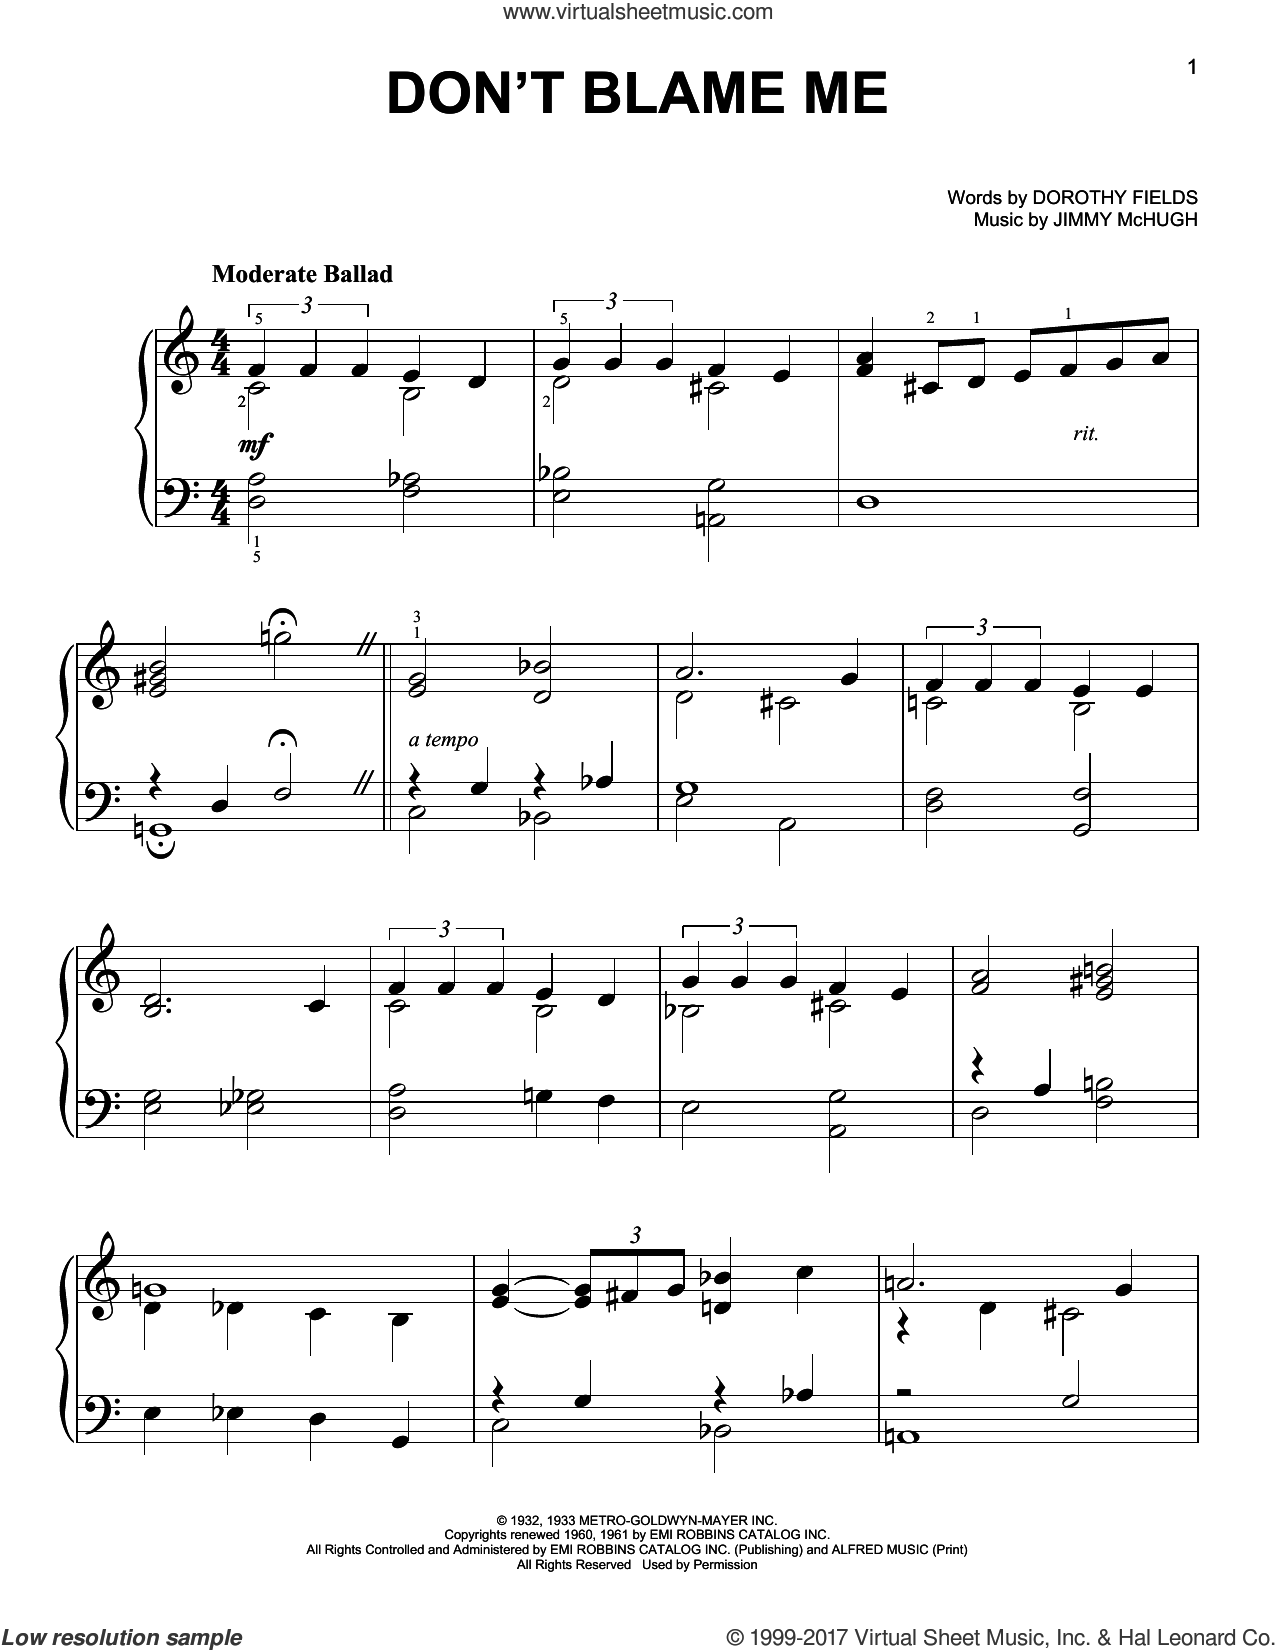 Don't Blame Me sheet music for piano solo by Jimmy McHugh and Dorothy Fields, easy skill level